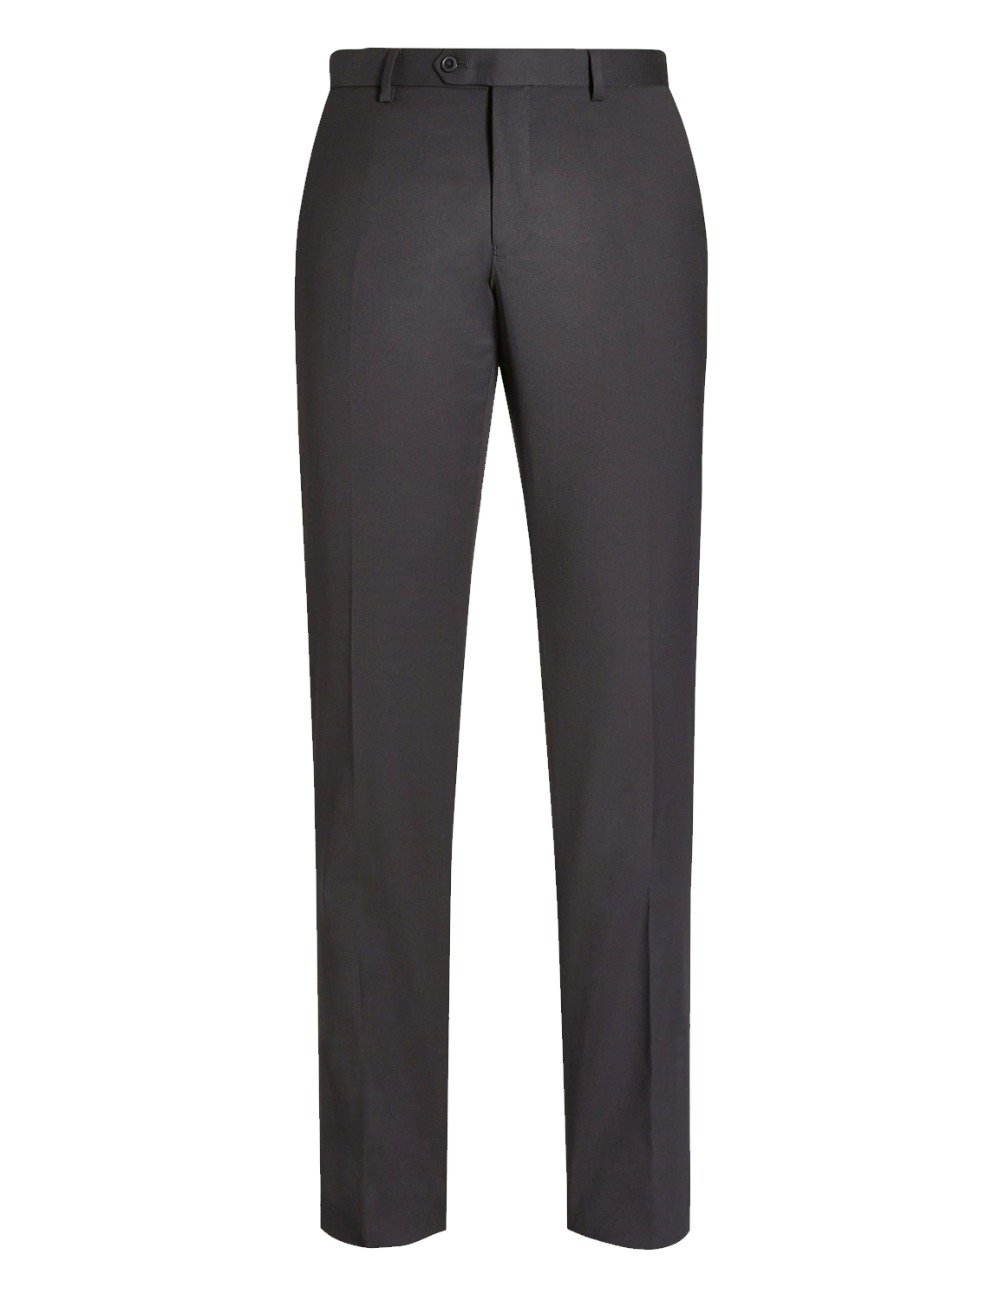 Men's Black Suit Separate Pant Flat-Front Straight Slim-fit Business Suit Pants New Arrival For Custom Made Male Suits Pants